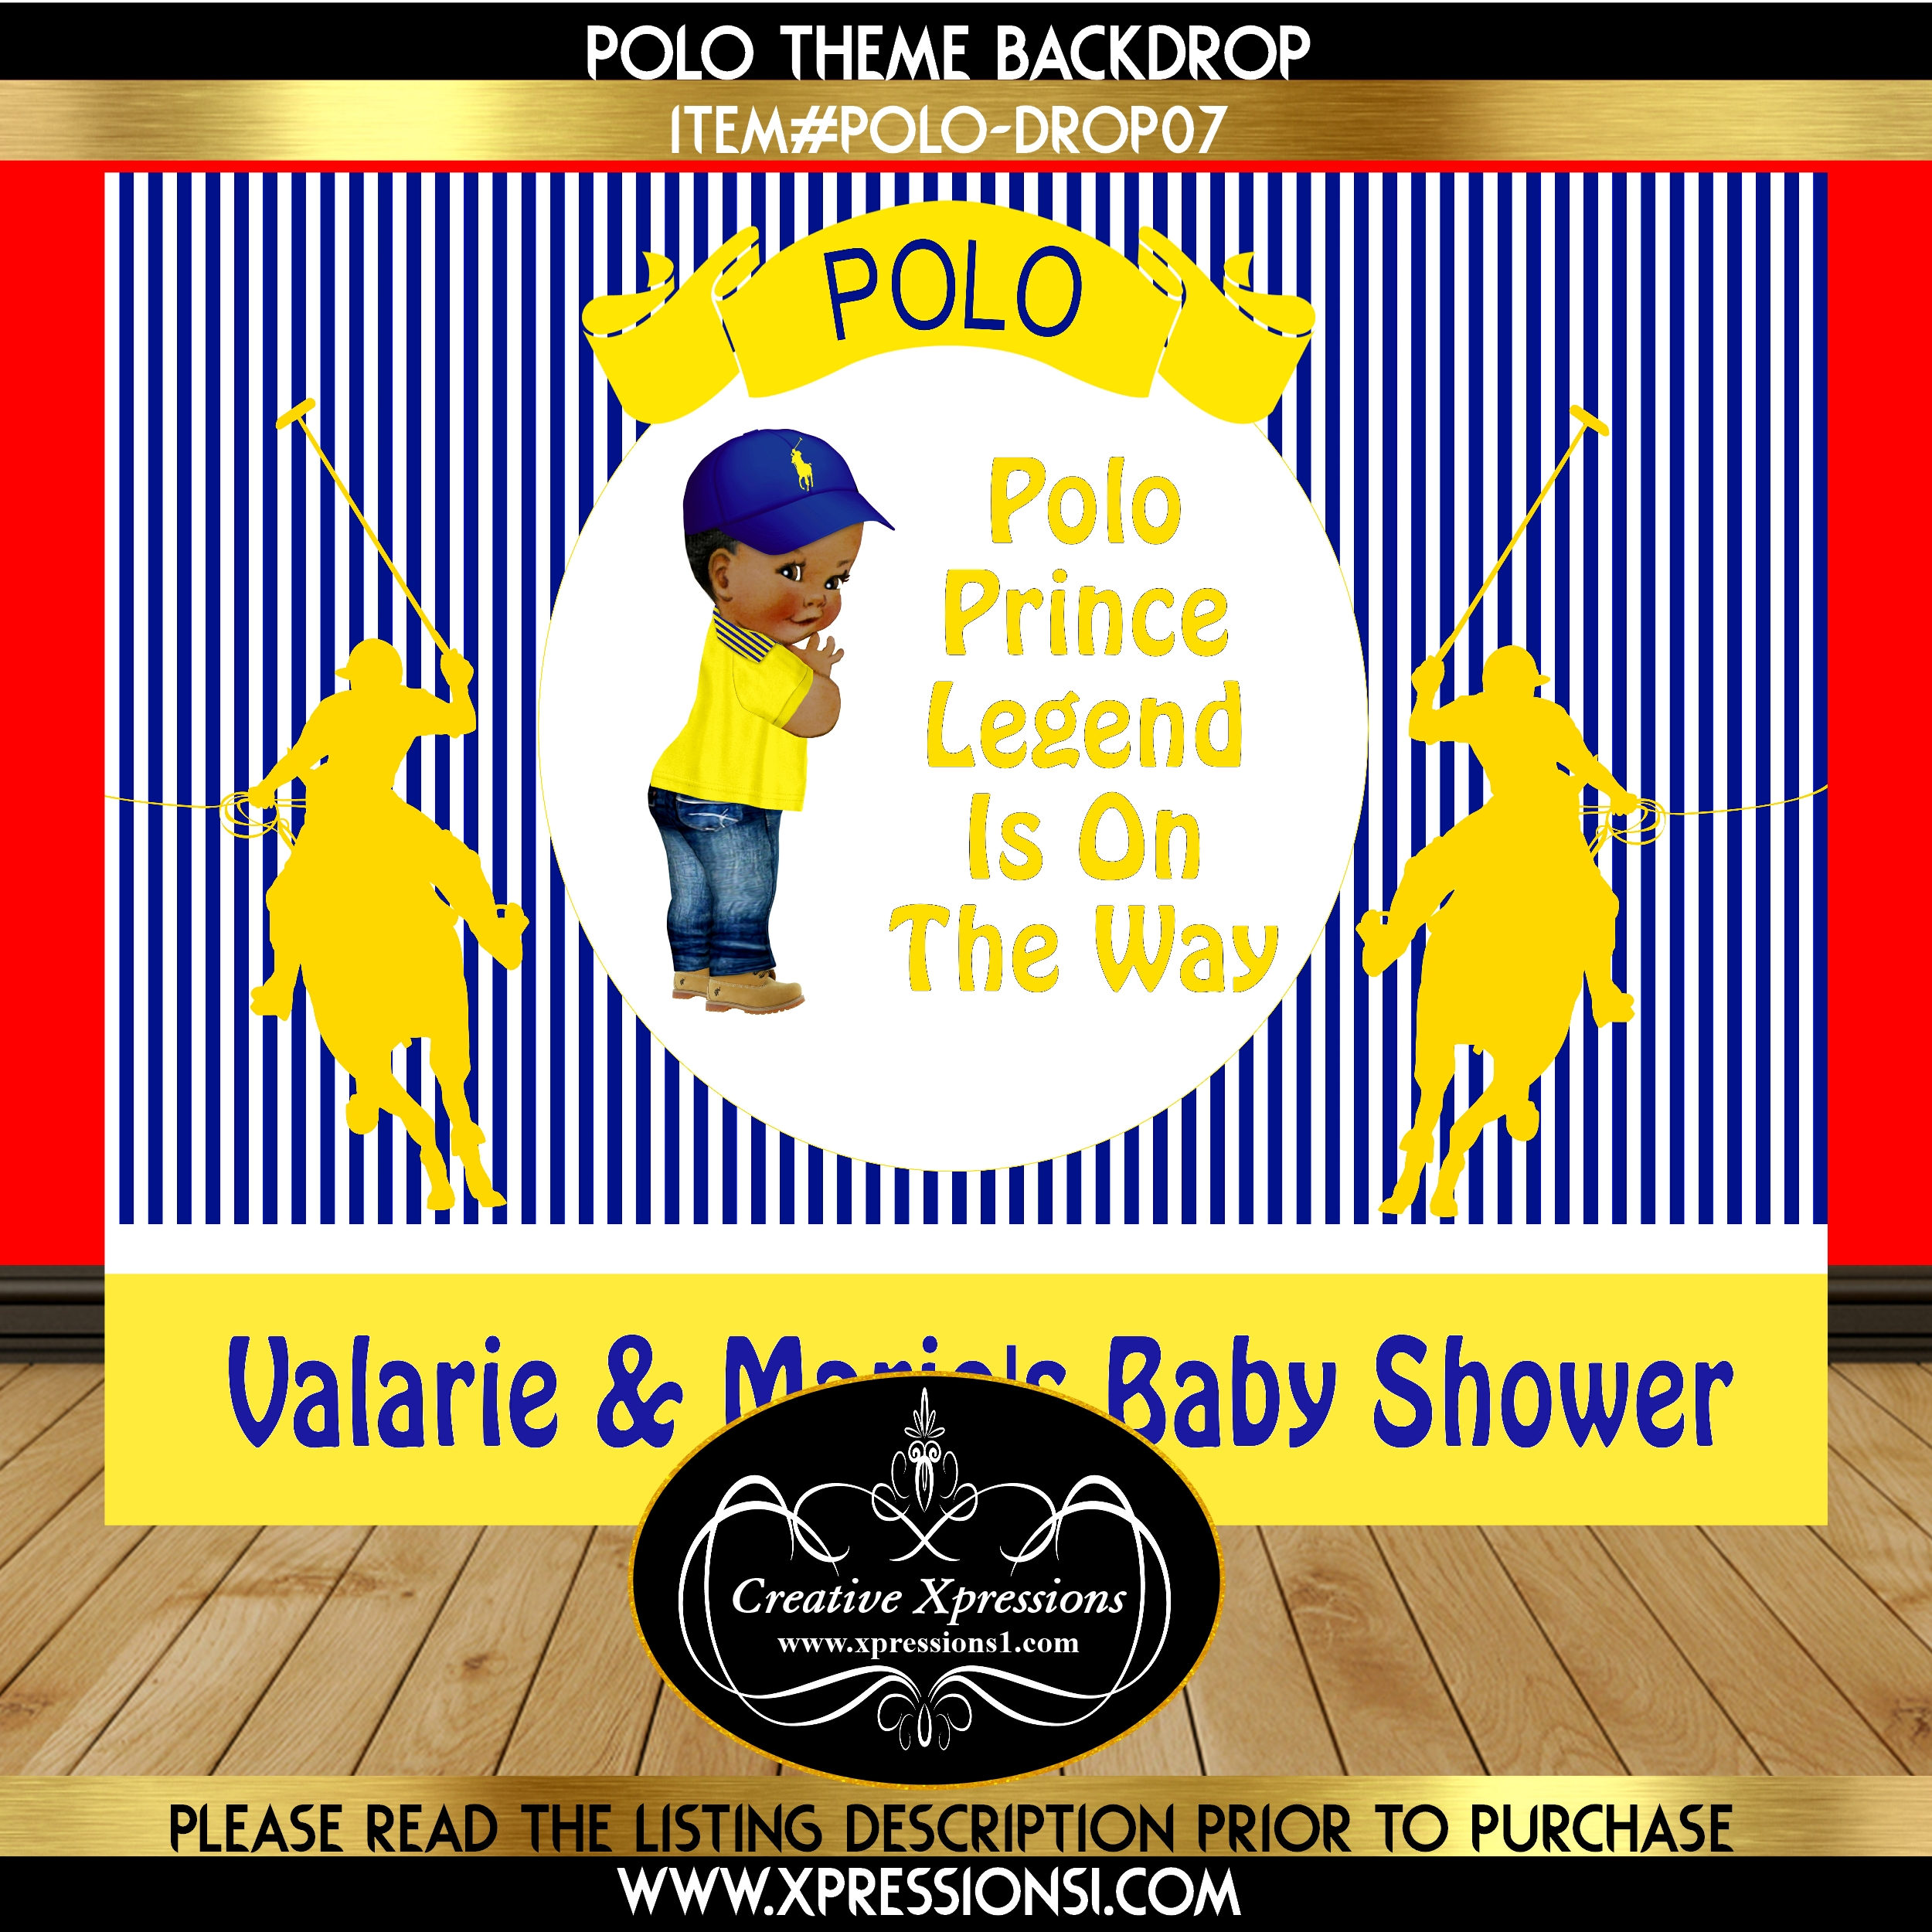 Polo Denim Baby Shower Backdrop